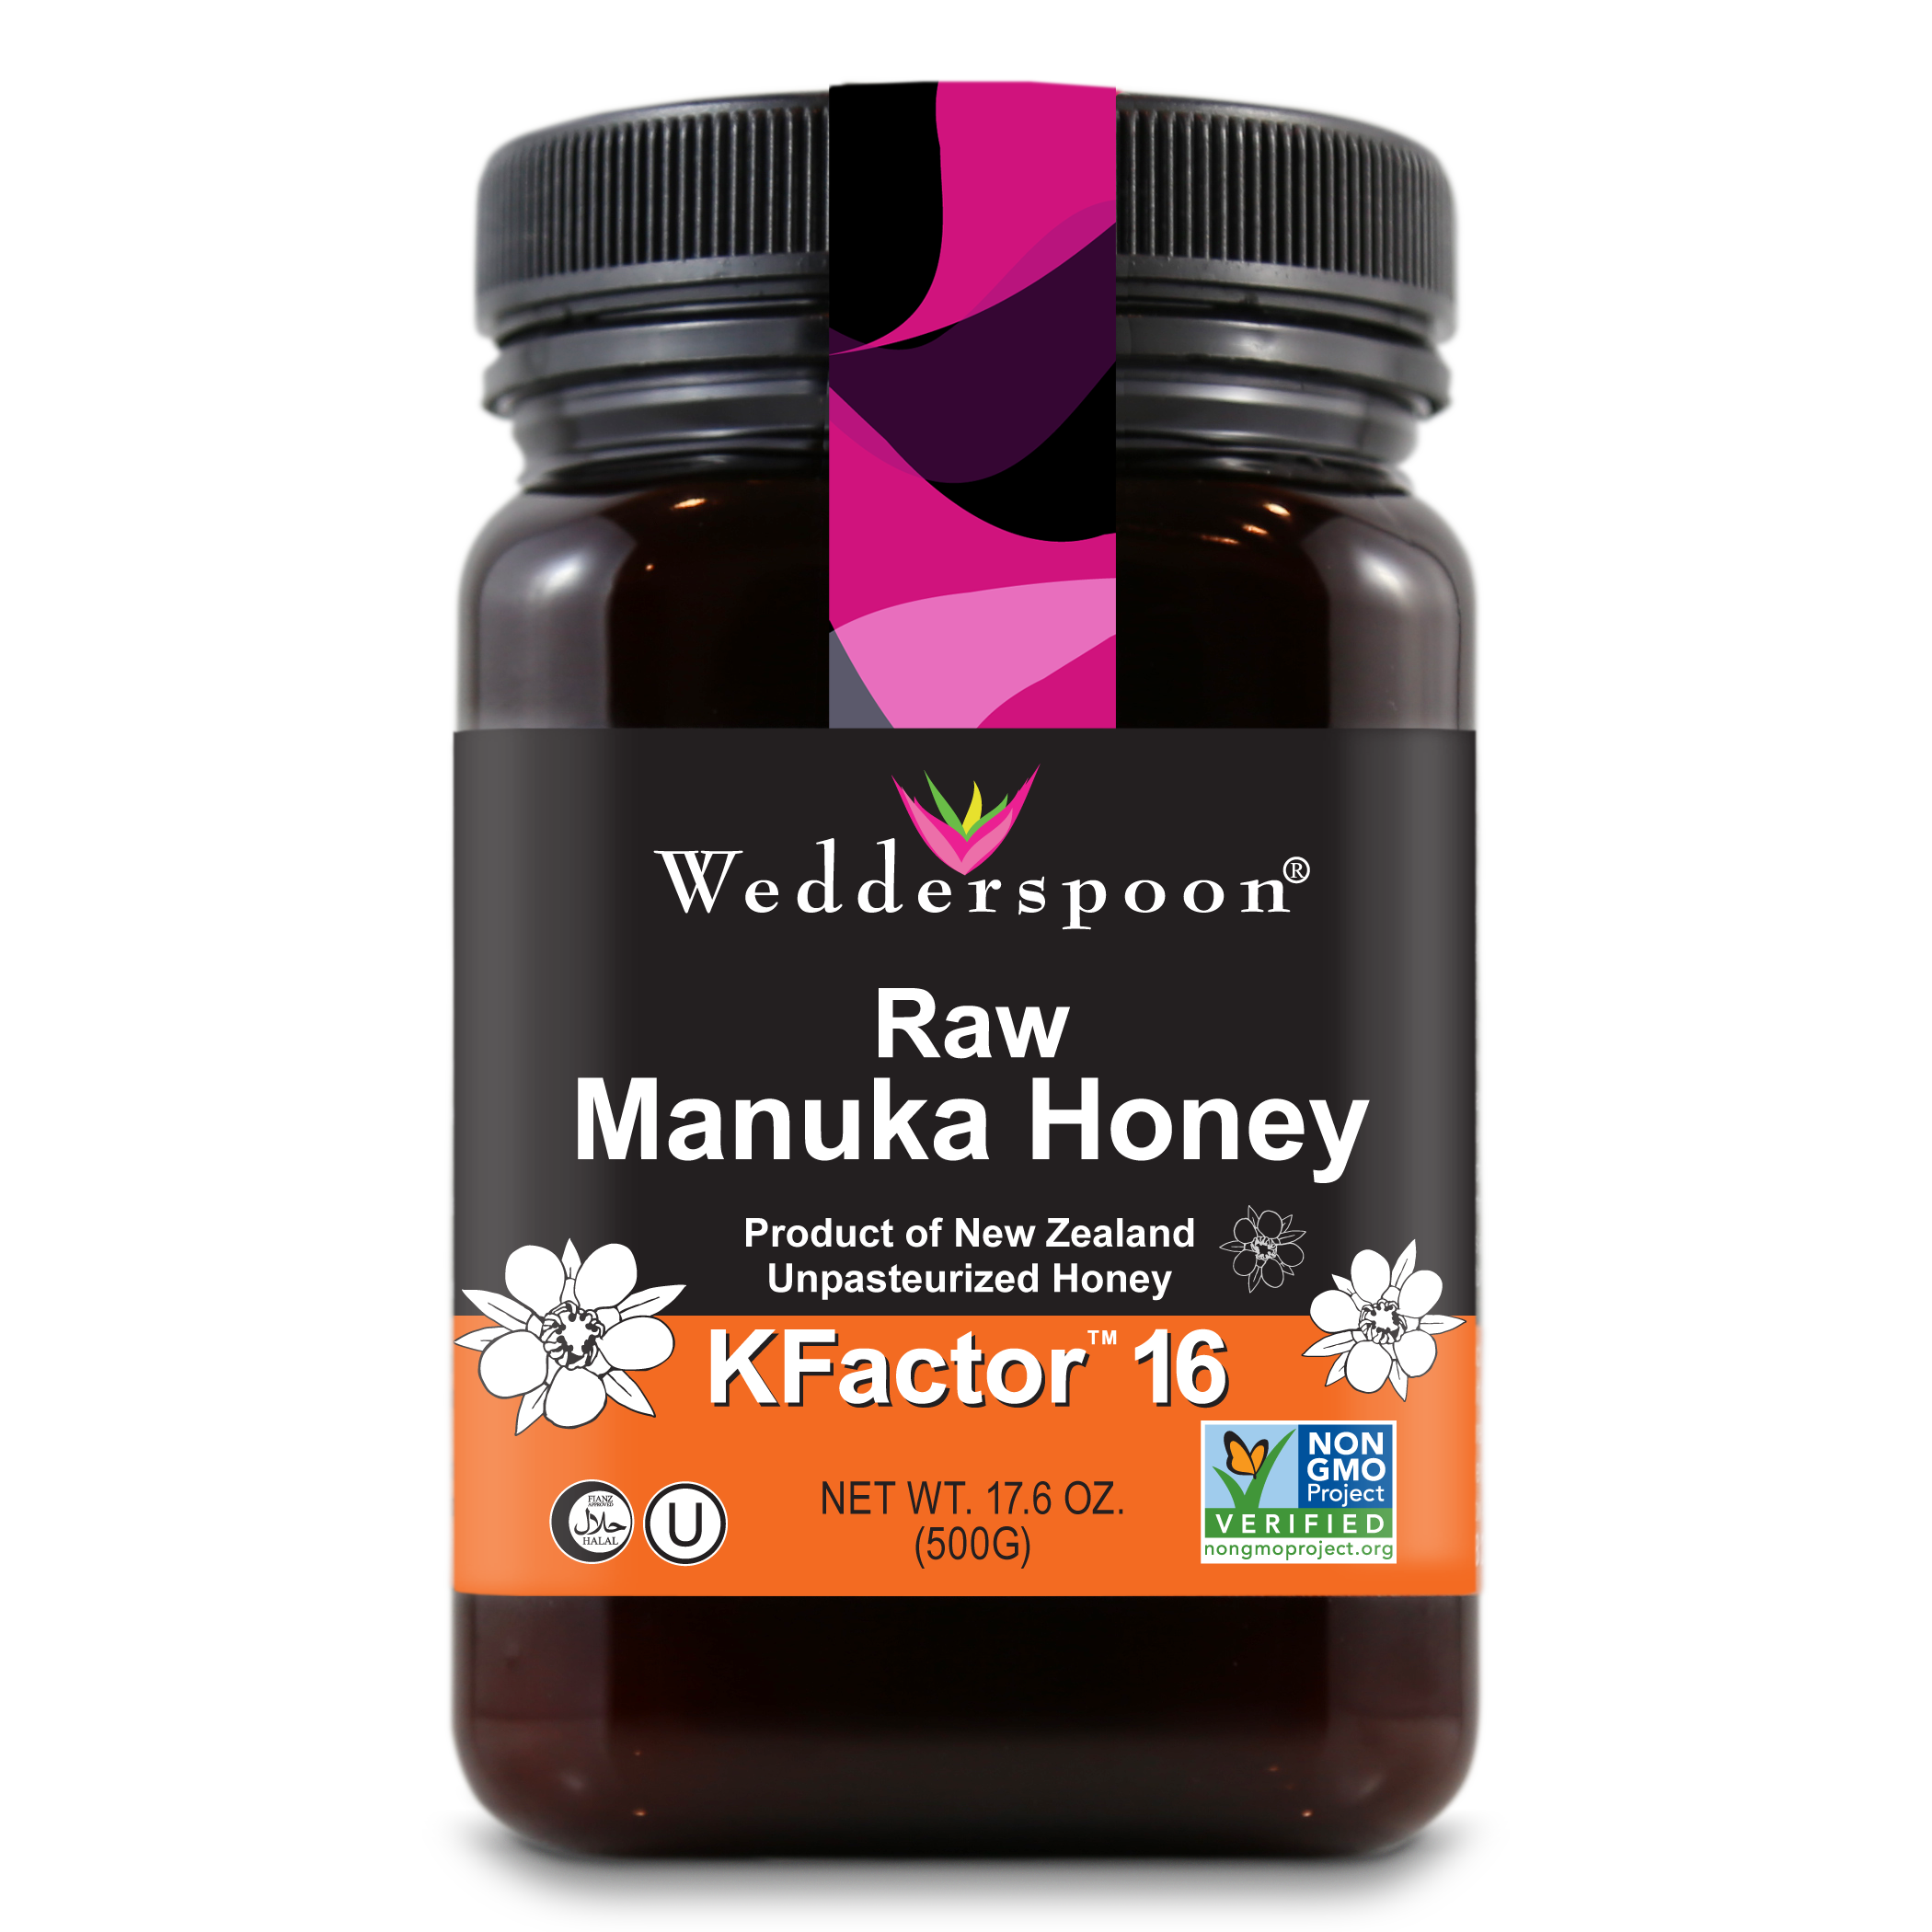 Raw organic manuka honey from new zealand